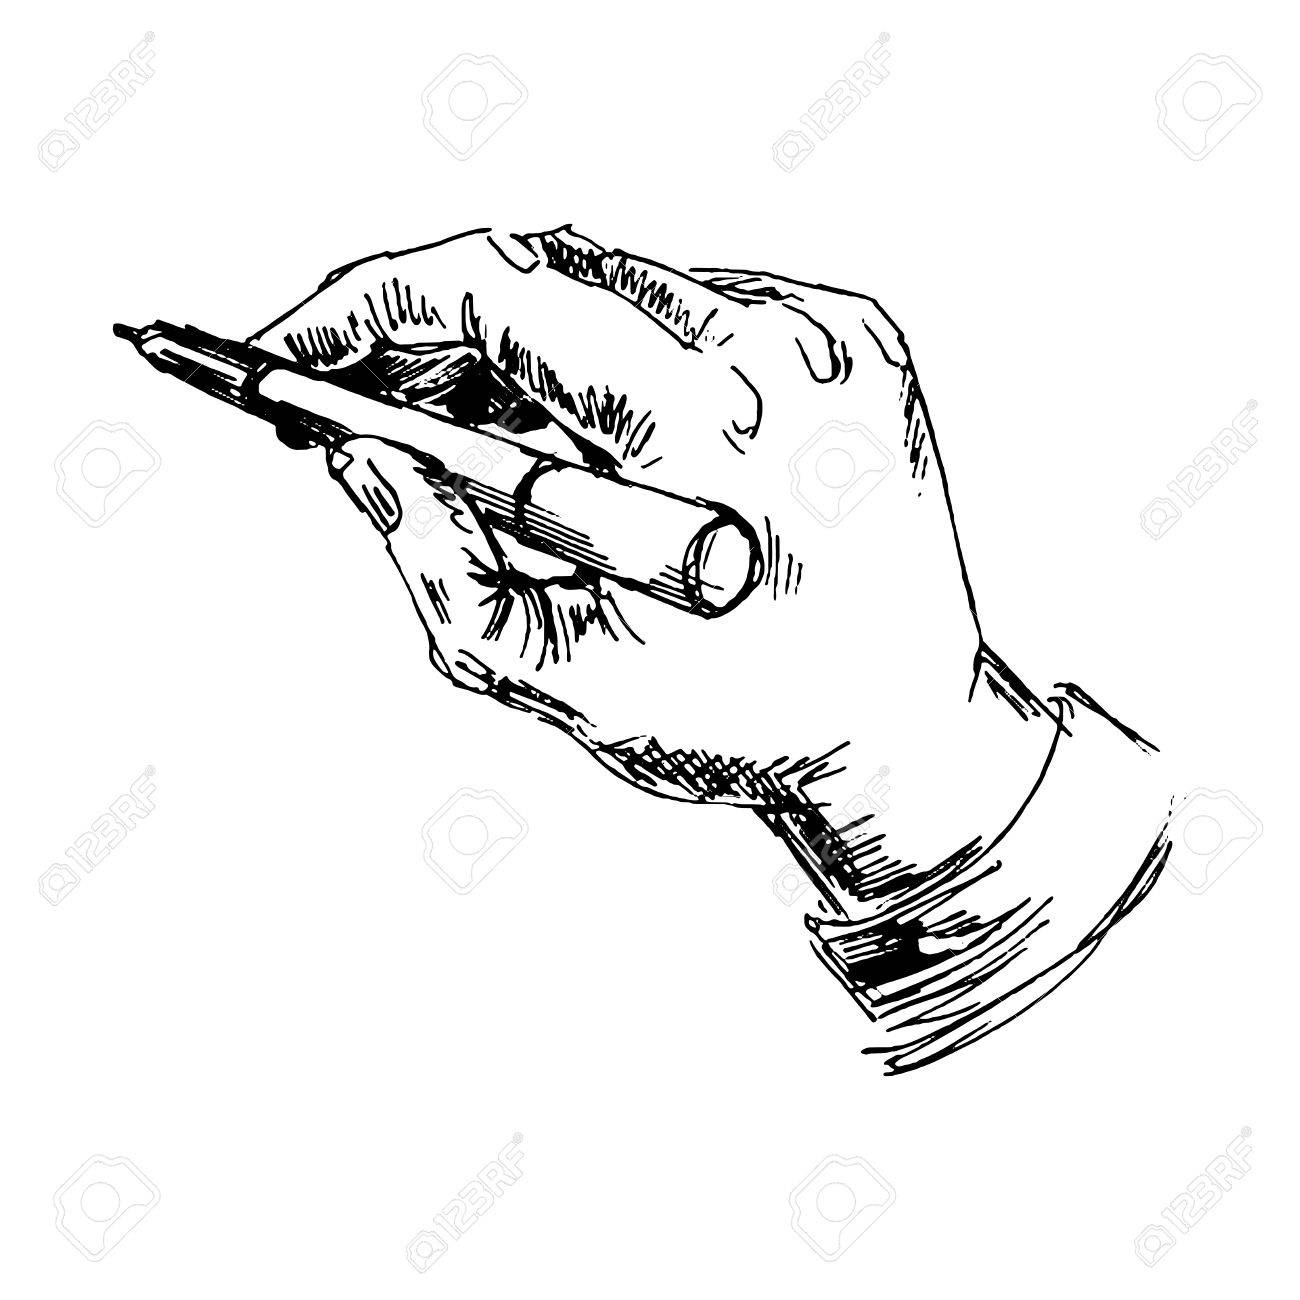 1300x1300 Hand With Pencil. Sketch Converted To Vectors. Royalty Free